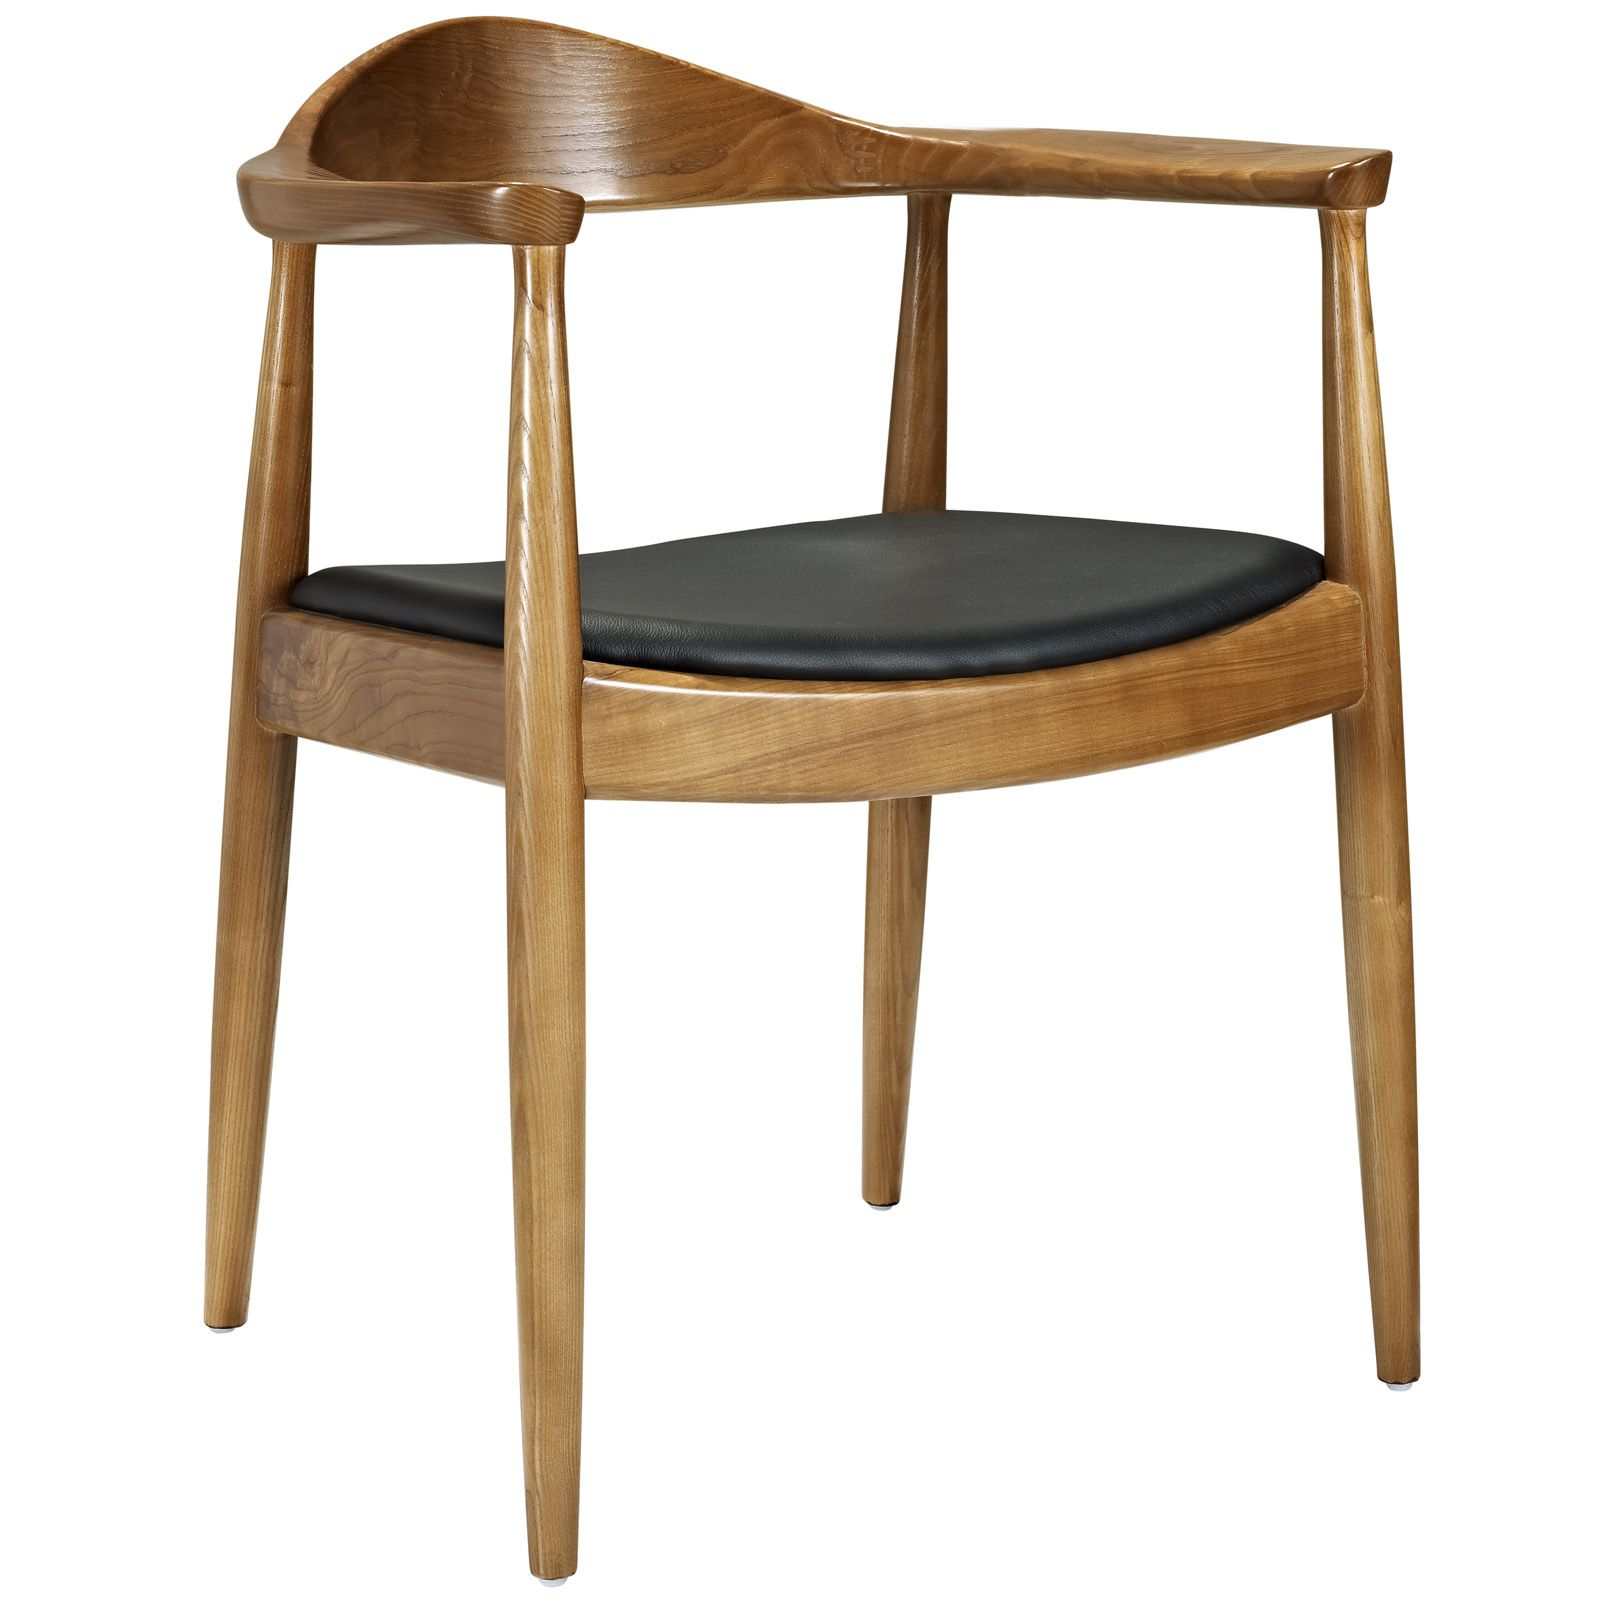 18 Various Kinds of Simple Wooden Chair to Get and Use in Your Home